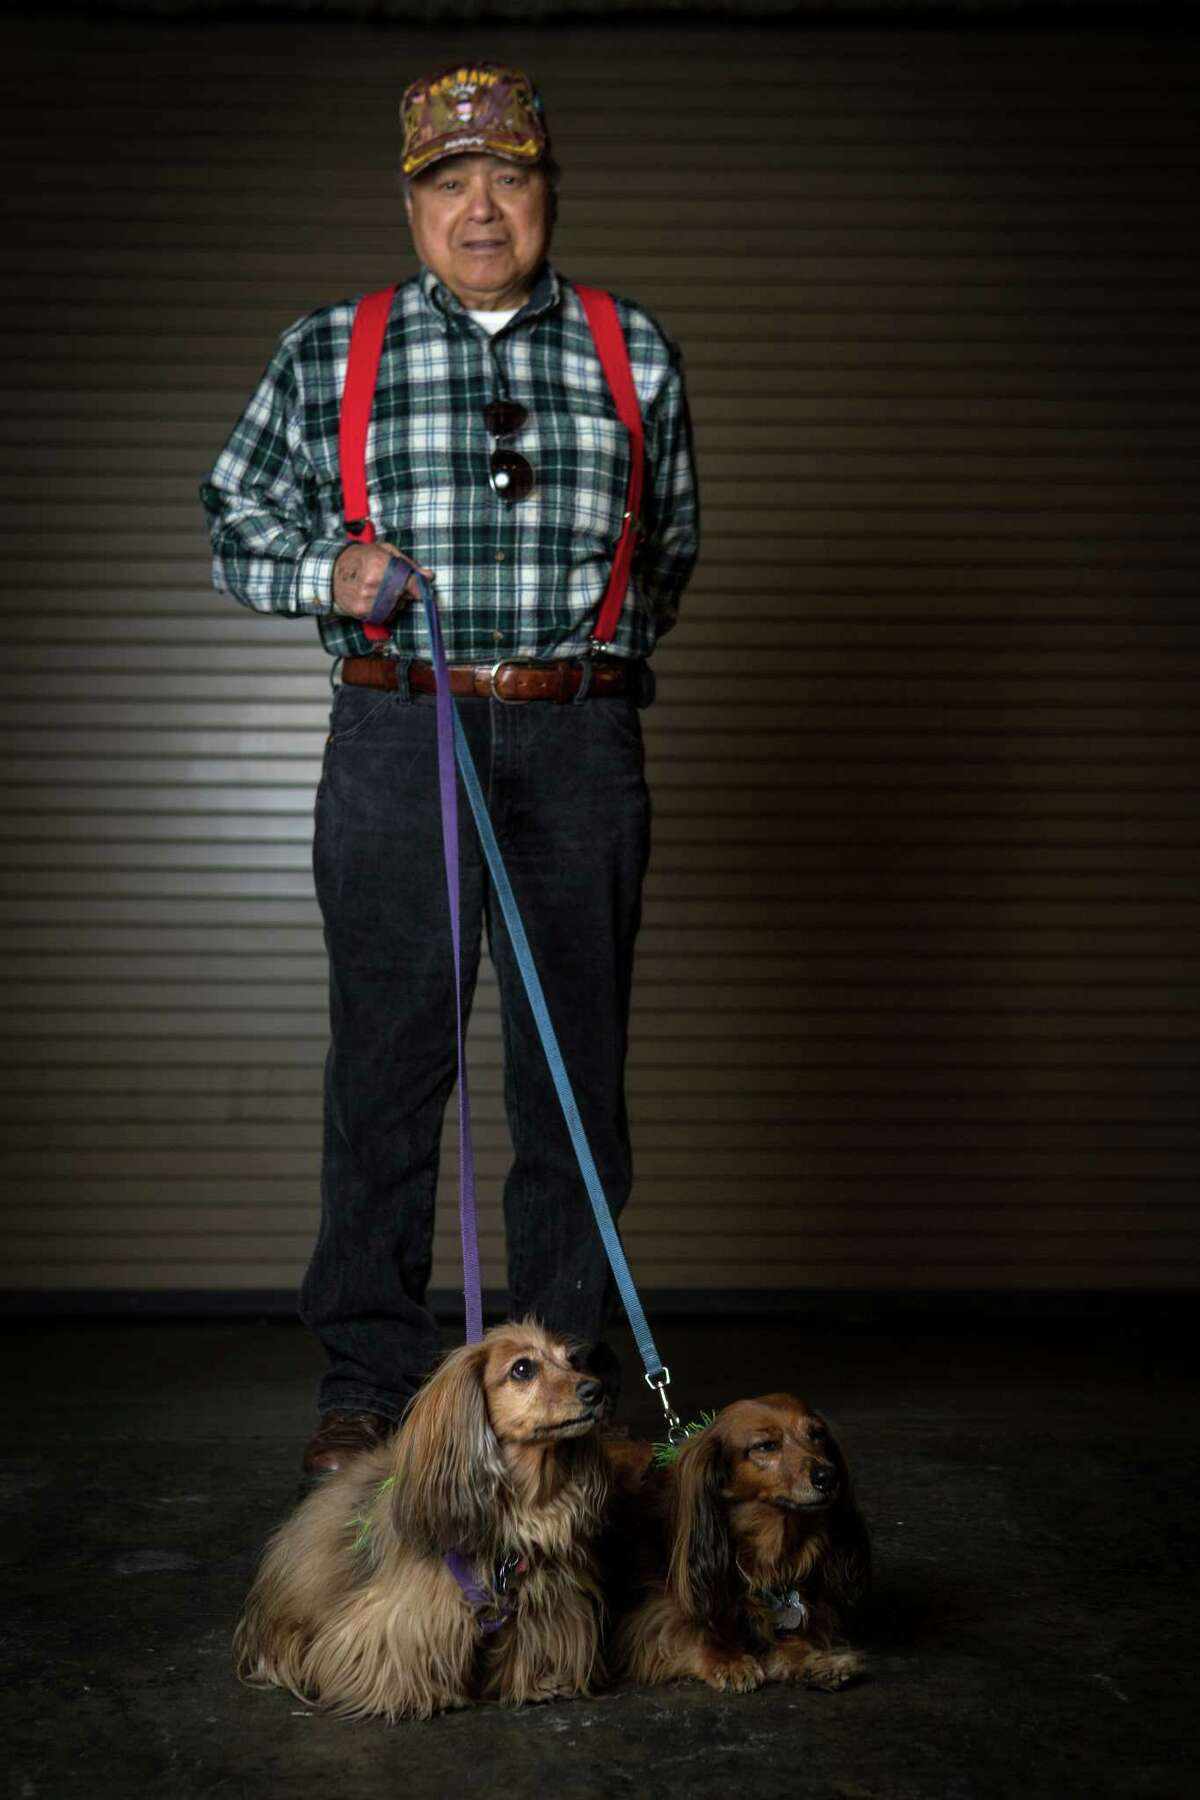 Suni and Cher, longhair dachshunds, are shown with owner Mark Sison of the Nisqually Tribe.